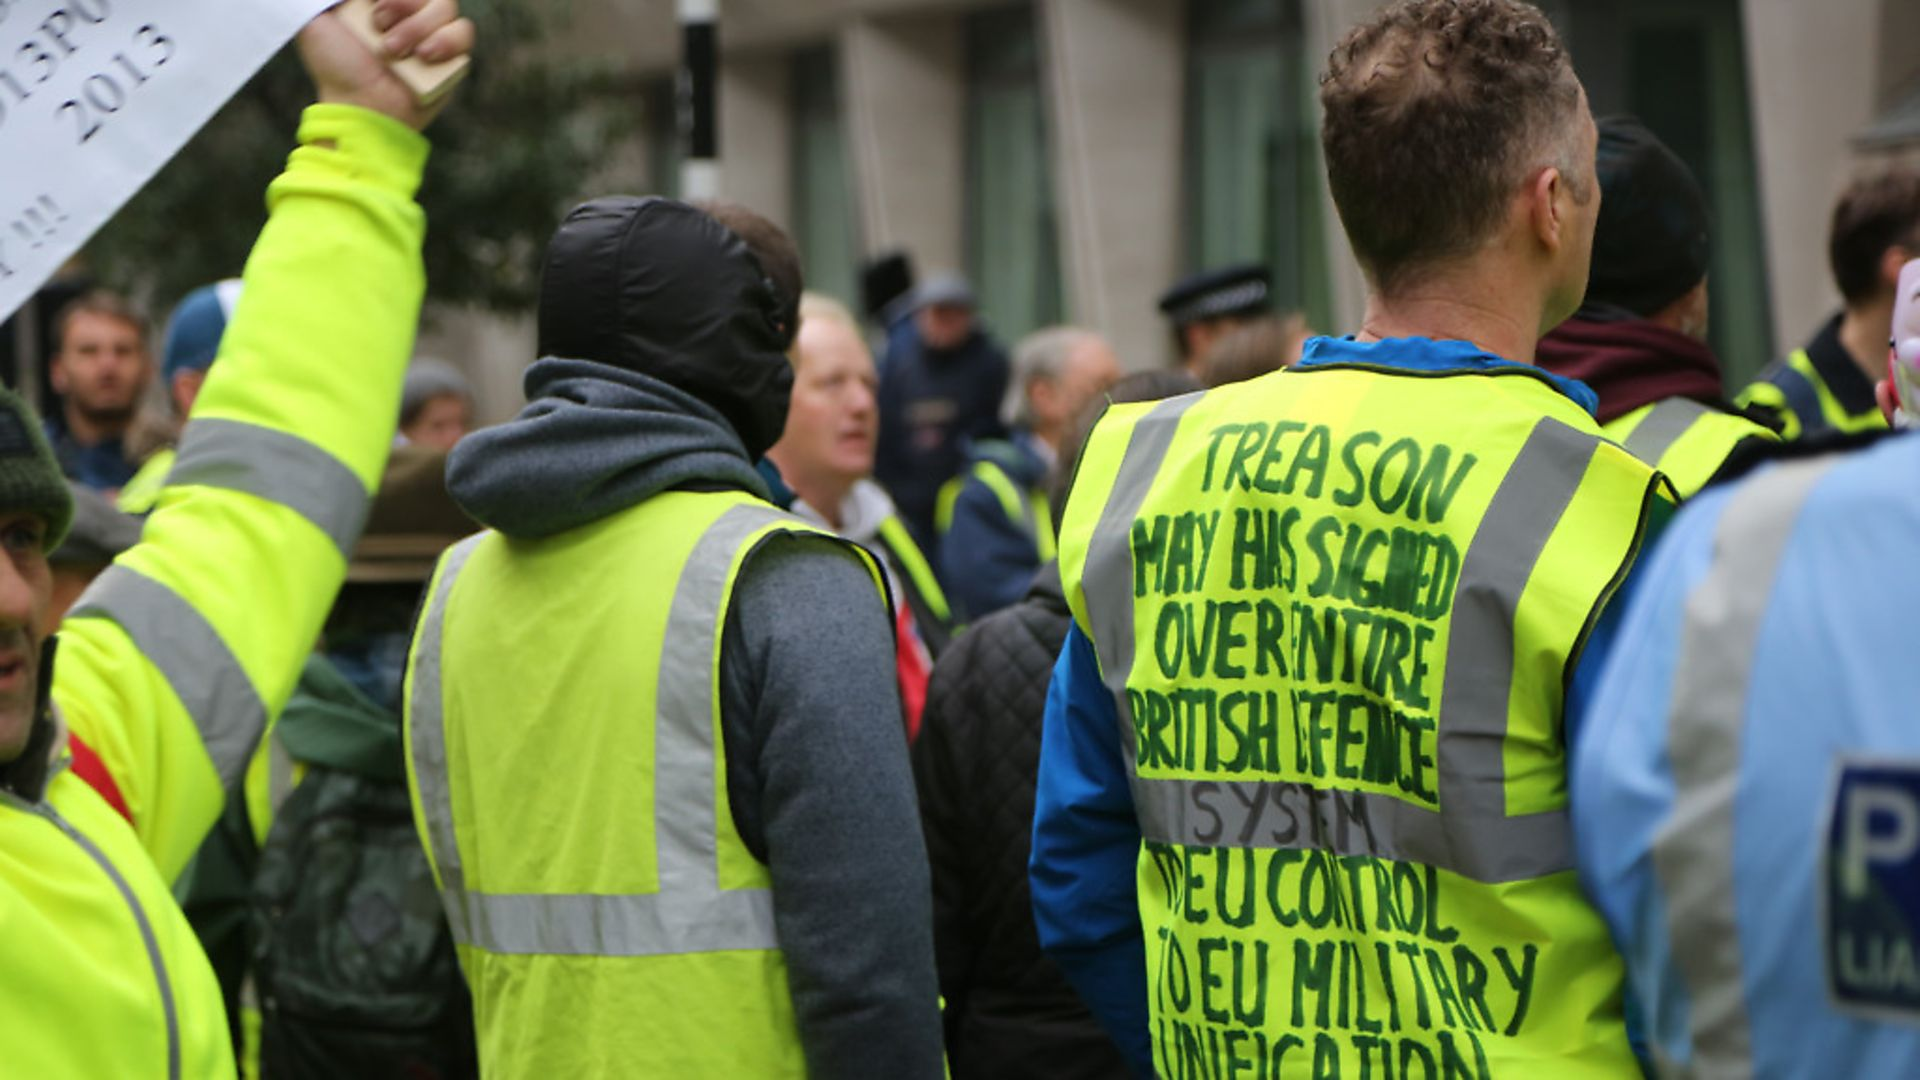 Far right yellow vests stage a protest in front of the Saint James underground station London, England on January 12, 2019. (Photo by Tayfun Salci/Anadolu Agency/Getty Images) - Credit: Getty Images